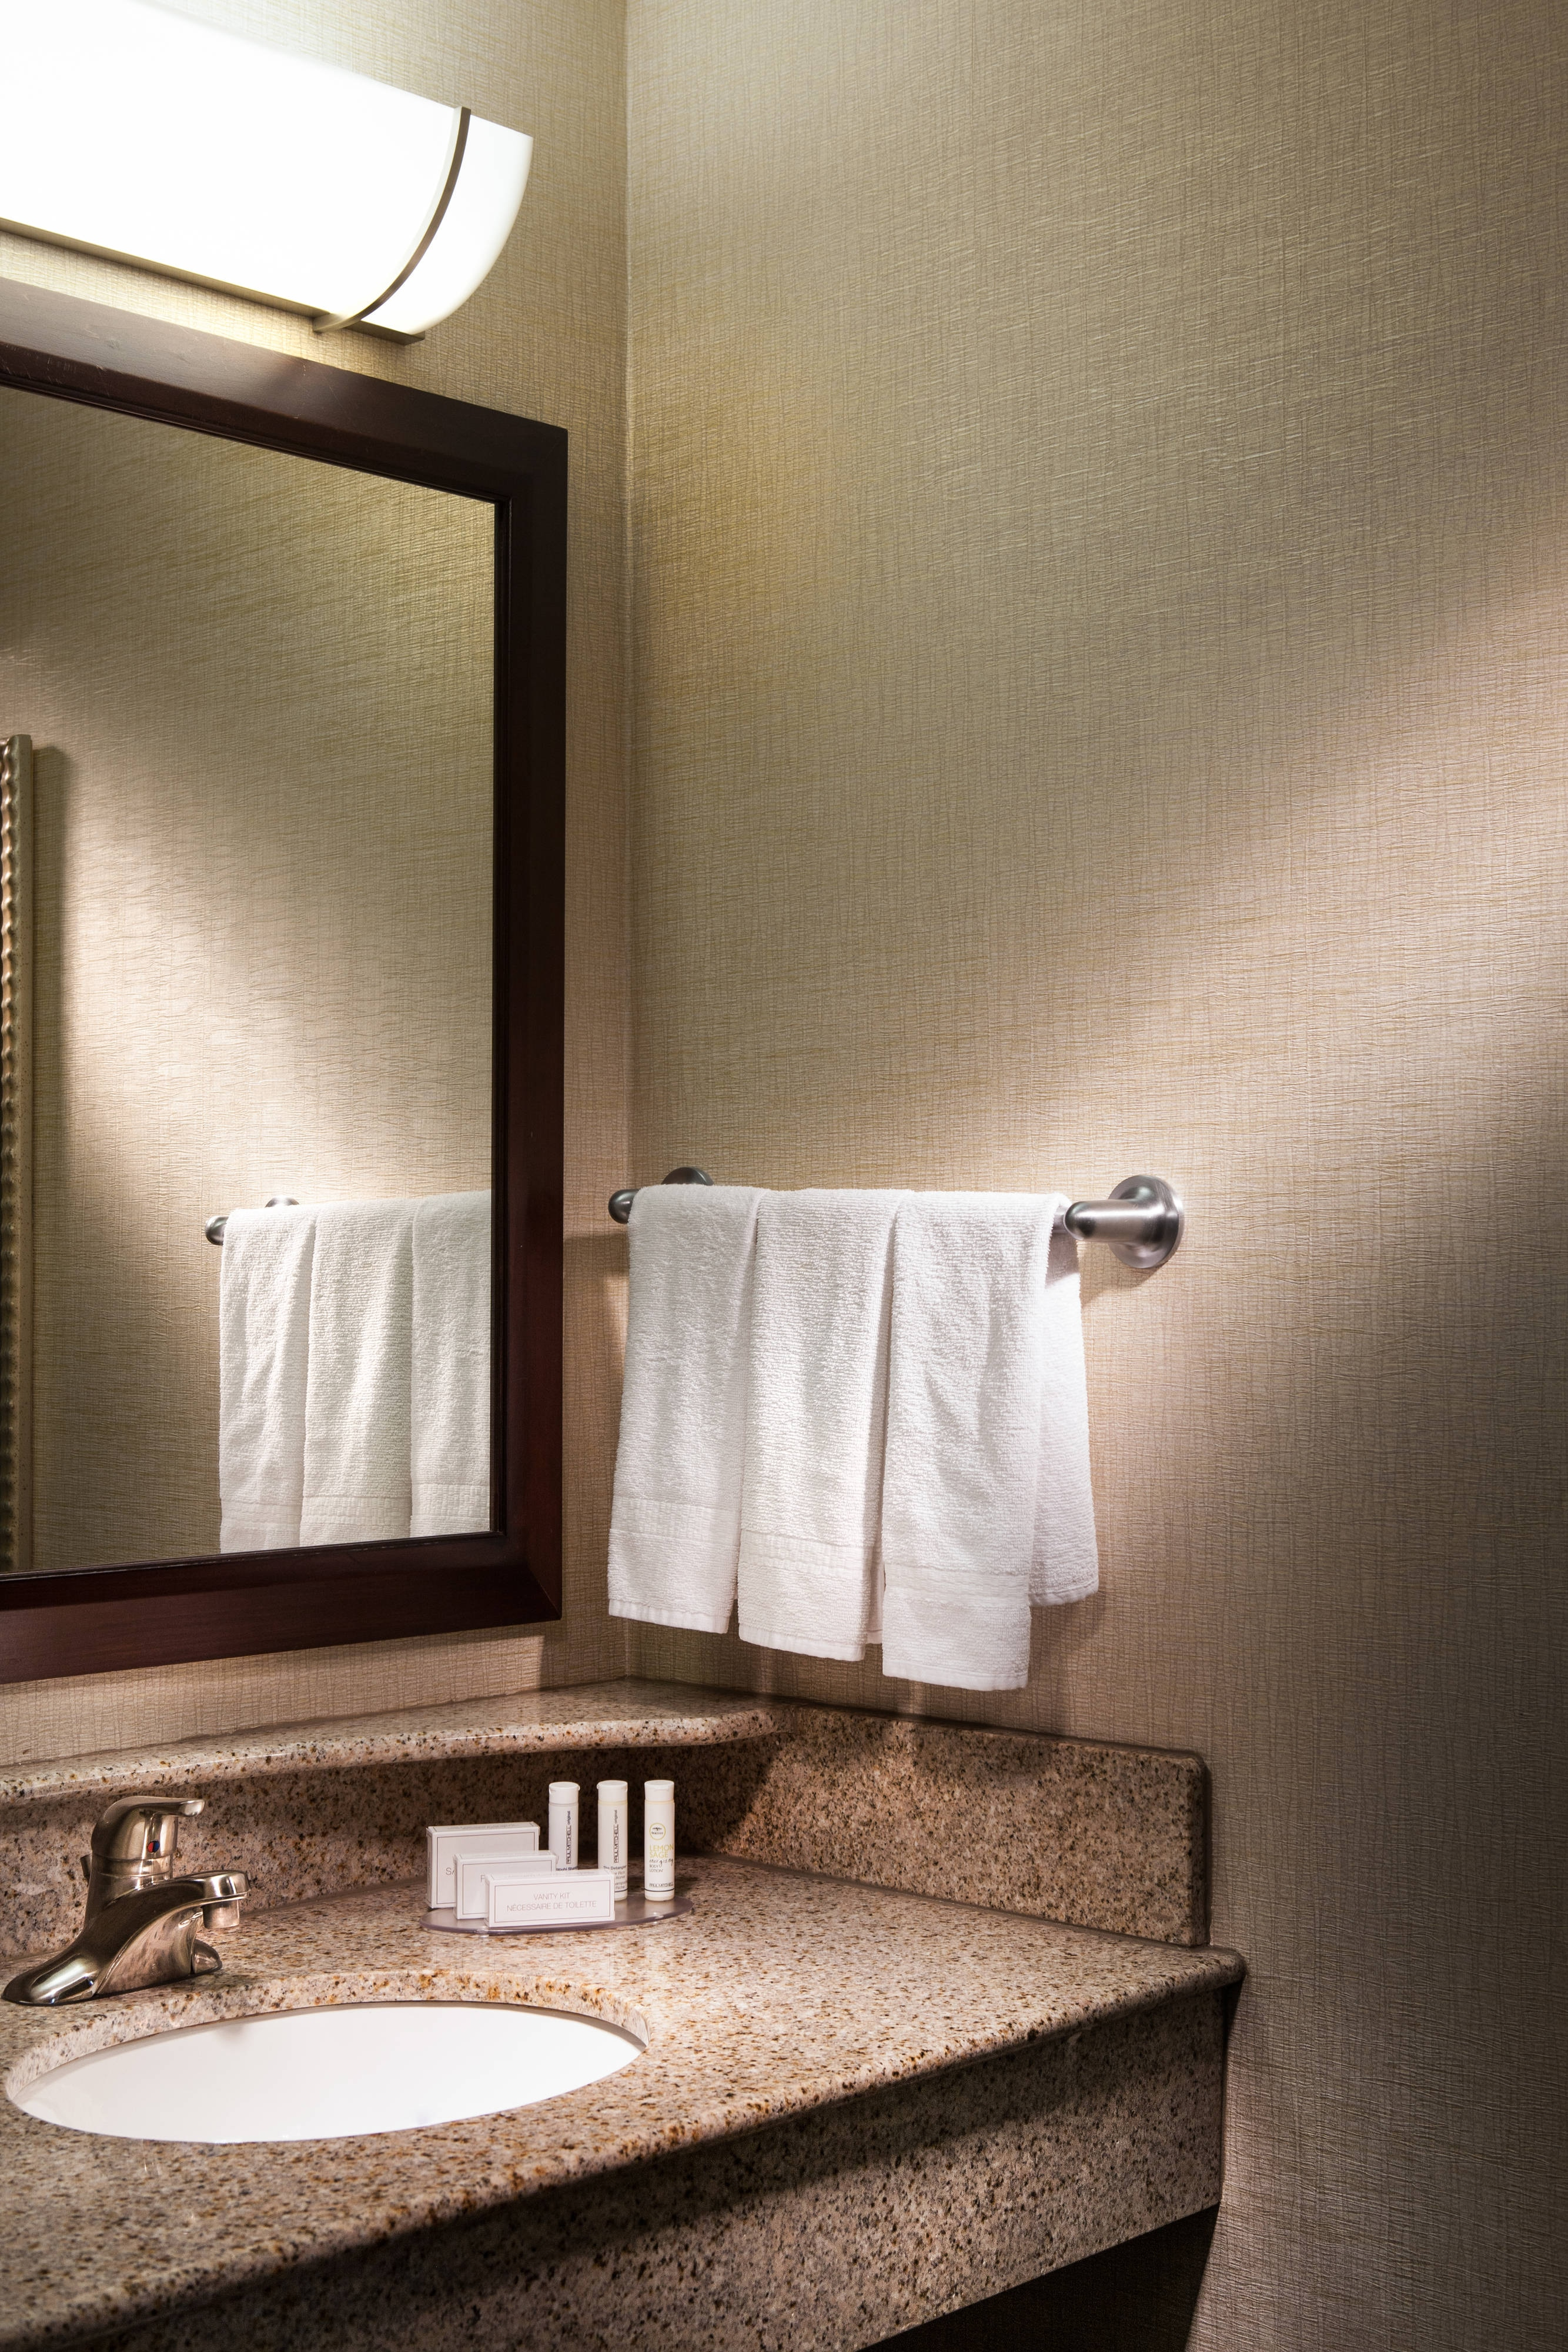 Hotel Rooms Suites Grapevine Texas